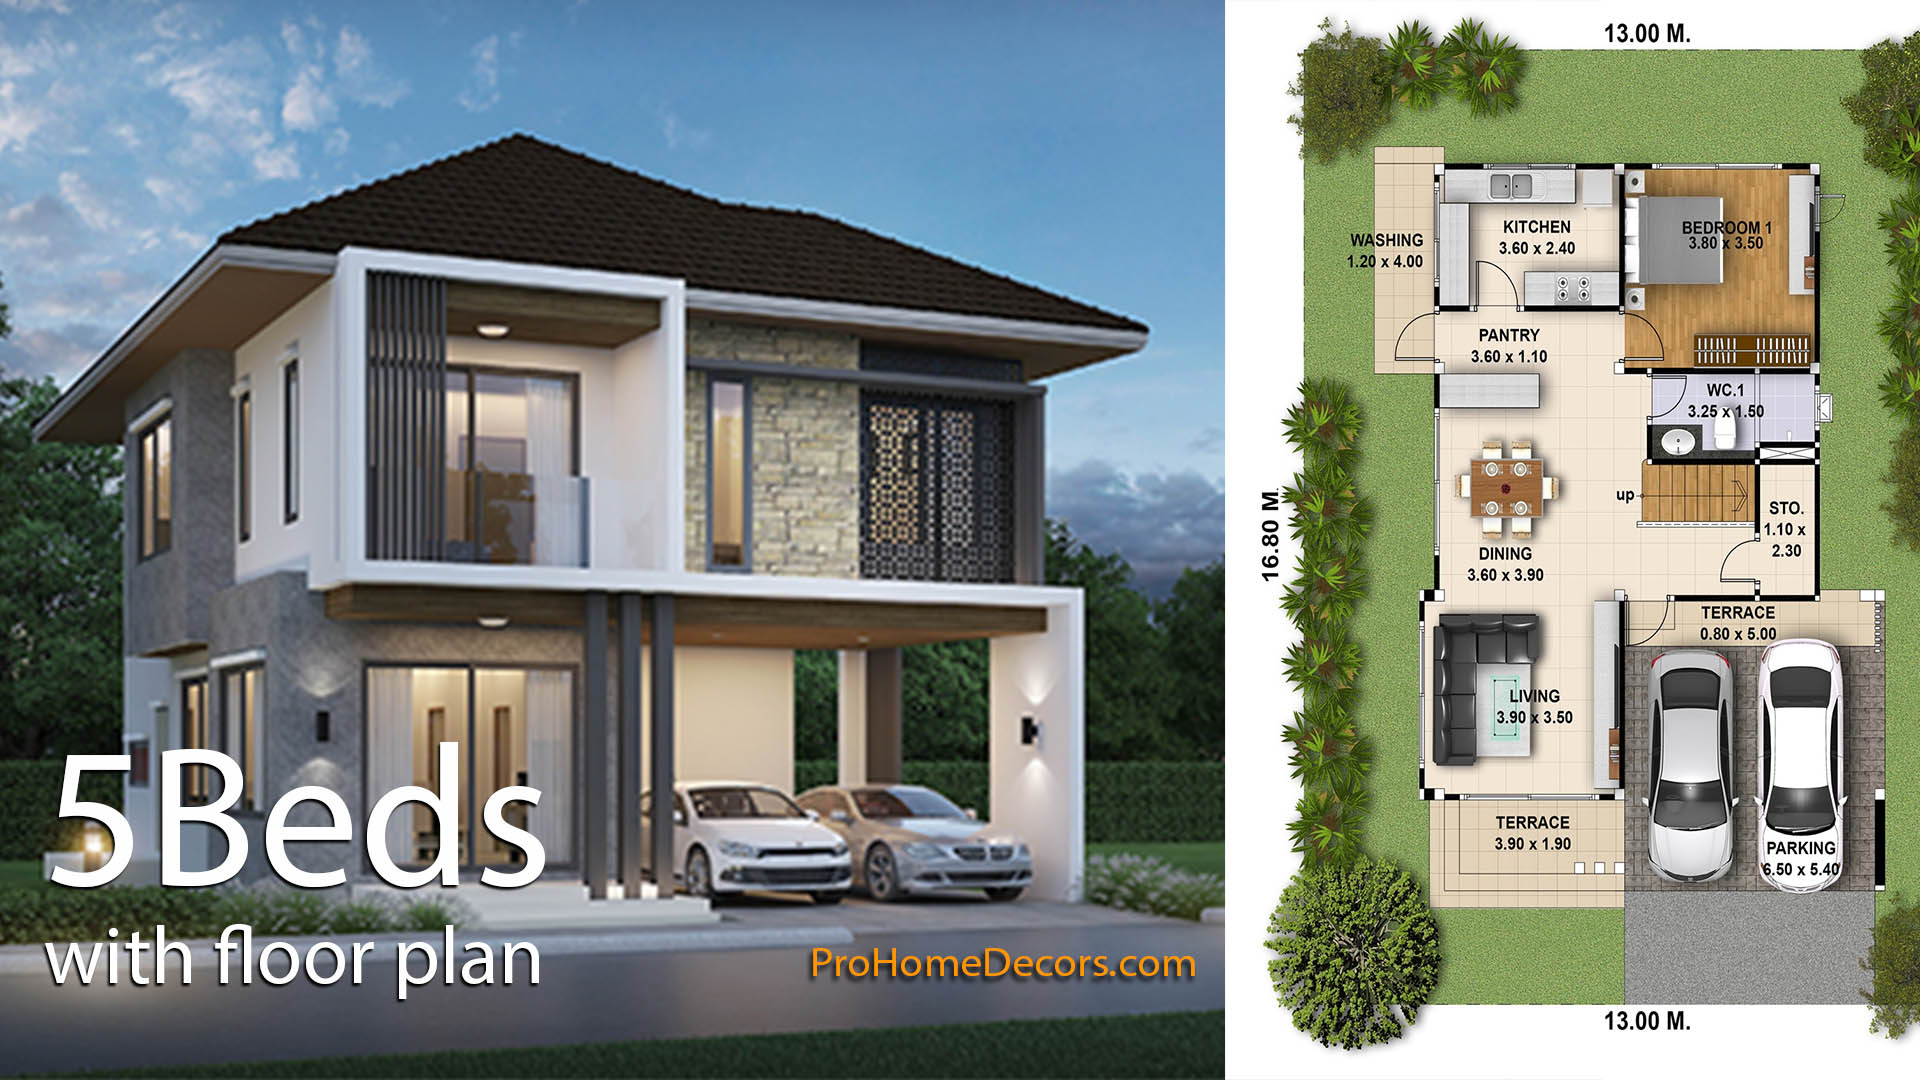 House Plan 3d 13x16 With 5 Bedrooms Pro Home Decors